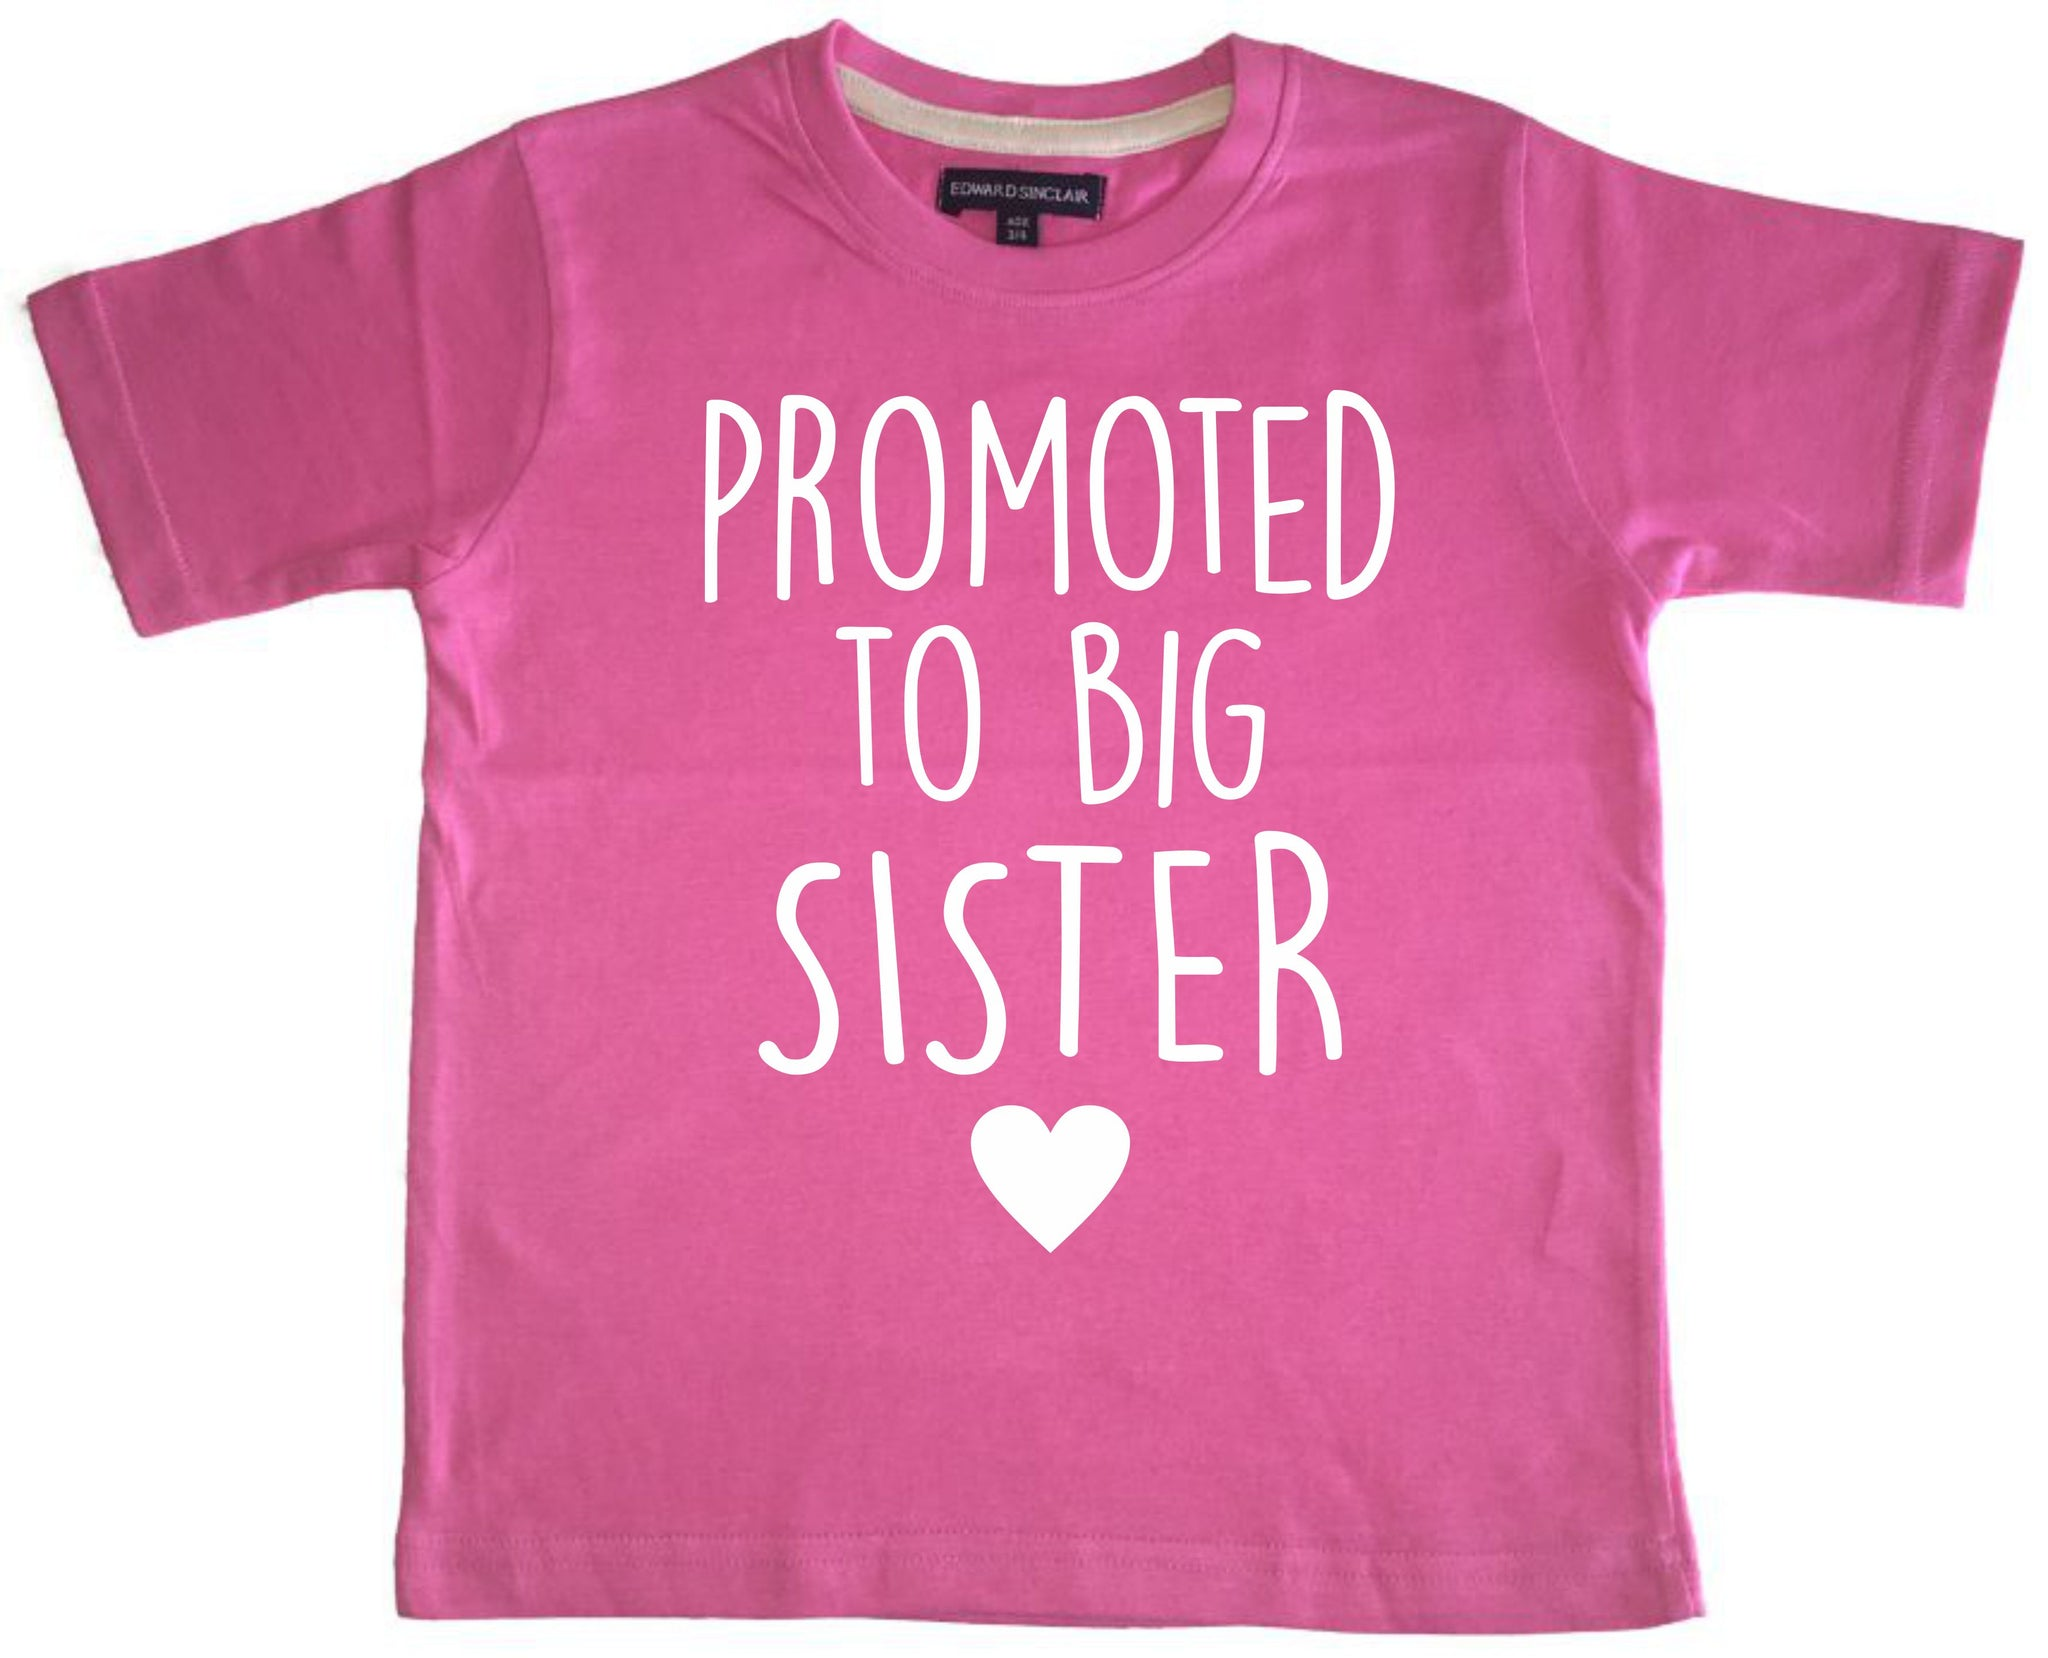 'Promoted to Big Sister' Bubblegum Pink Children's T Shirt